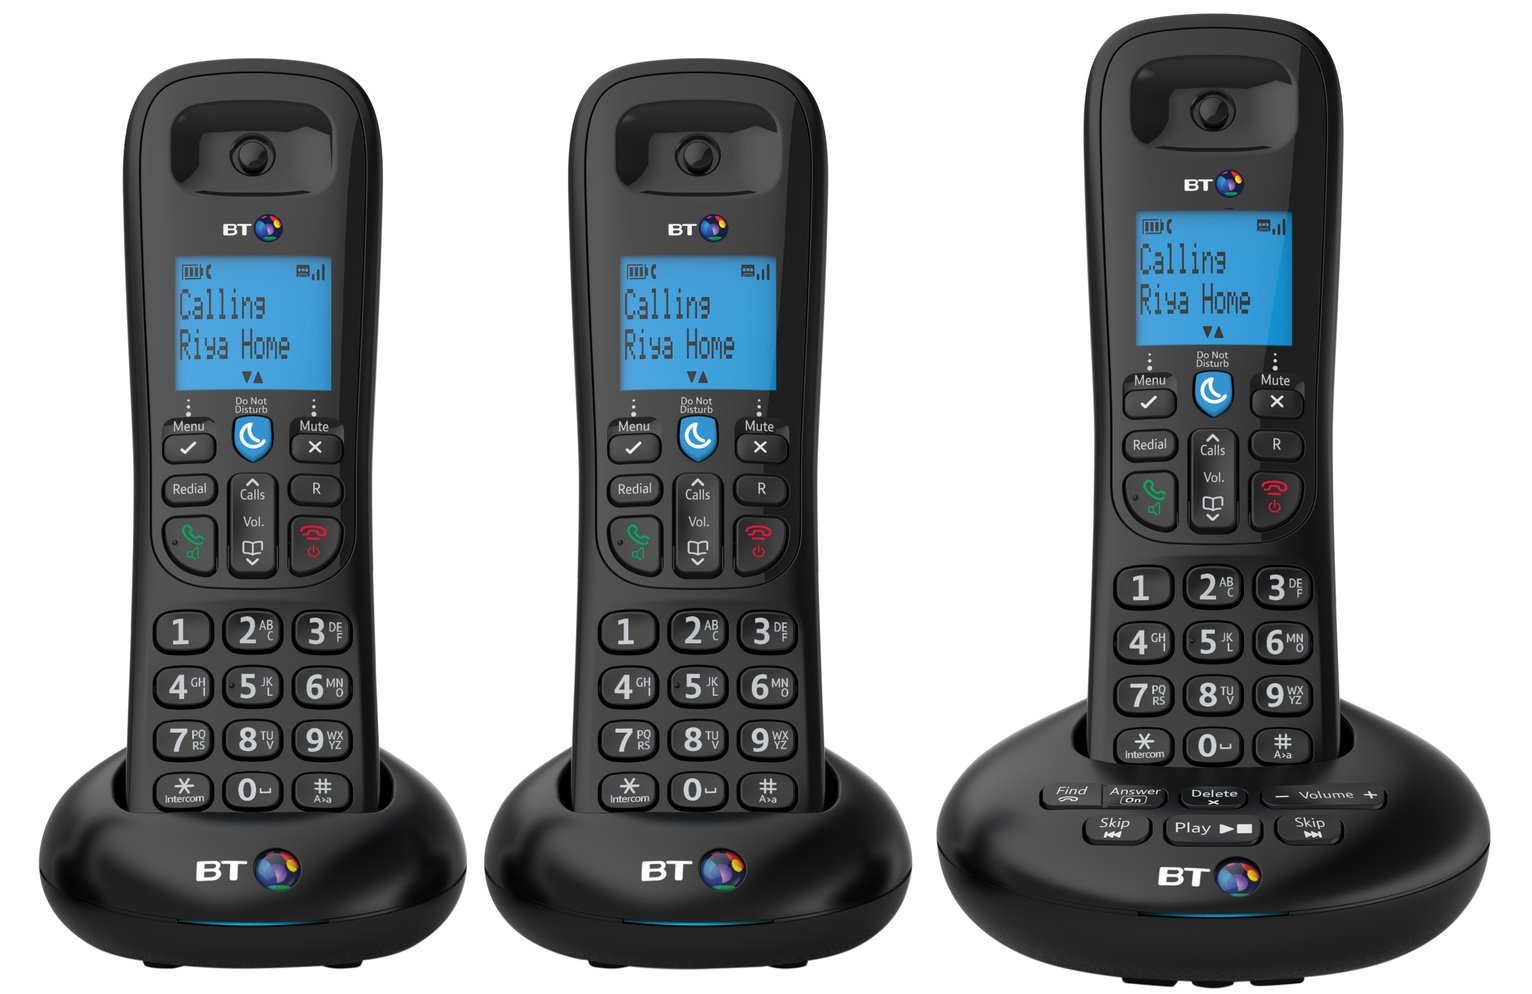 BT 3570 Cordless Telephone with Answer Machine - Triple from BT